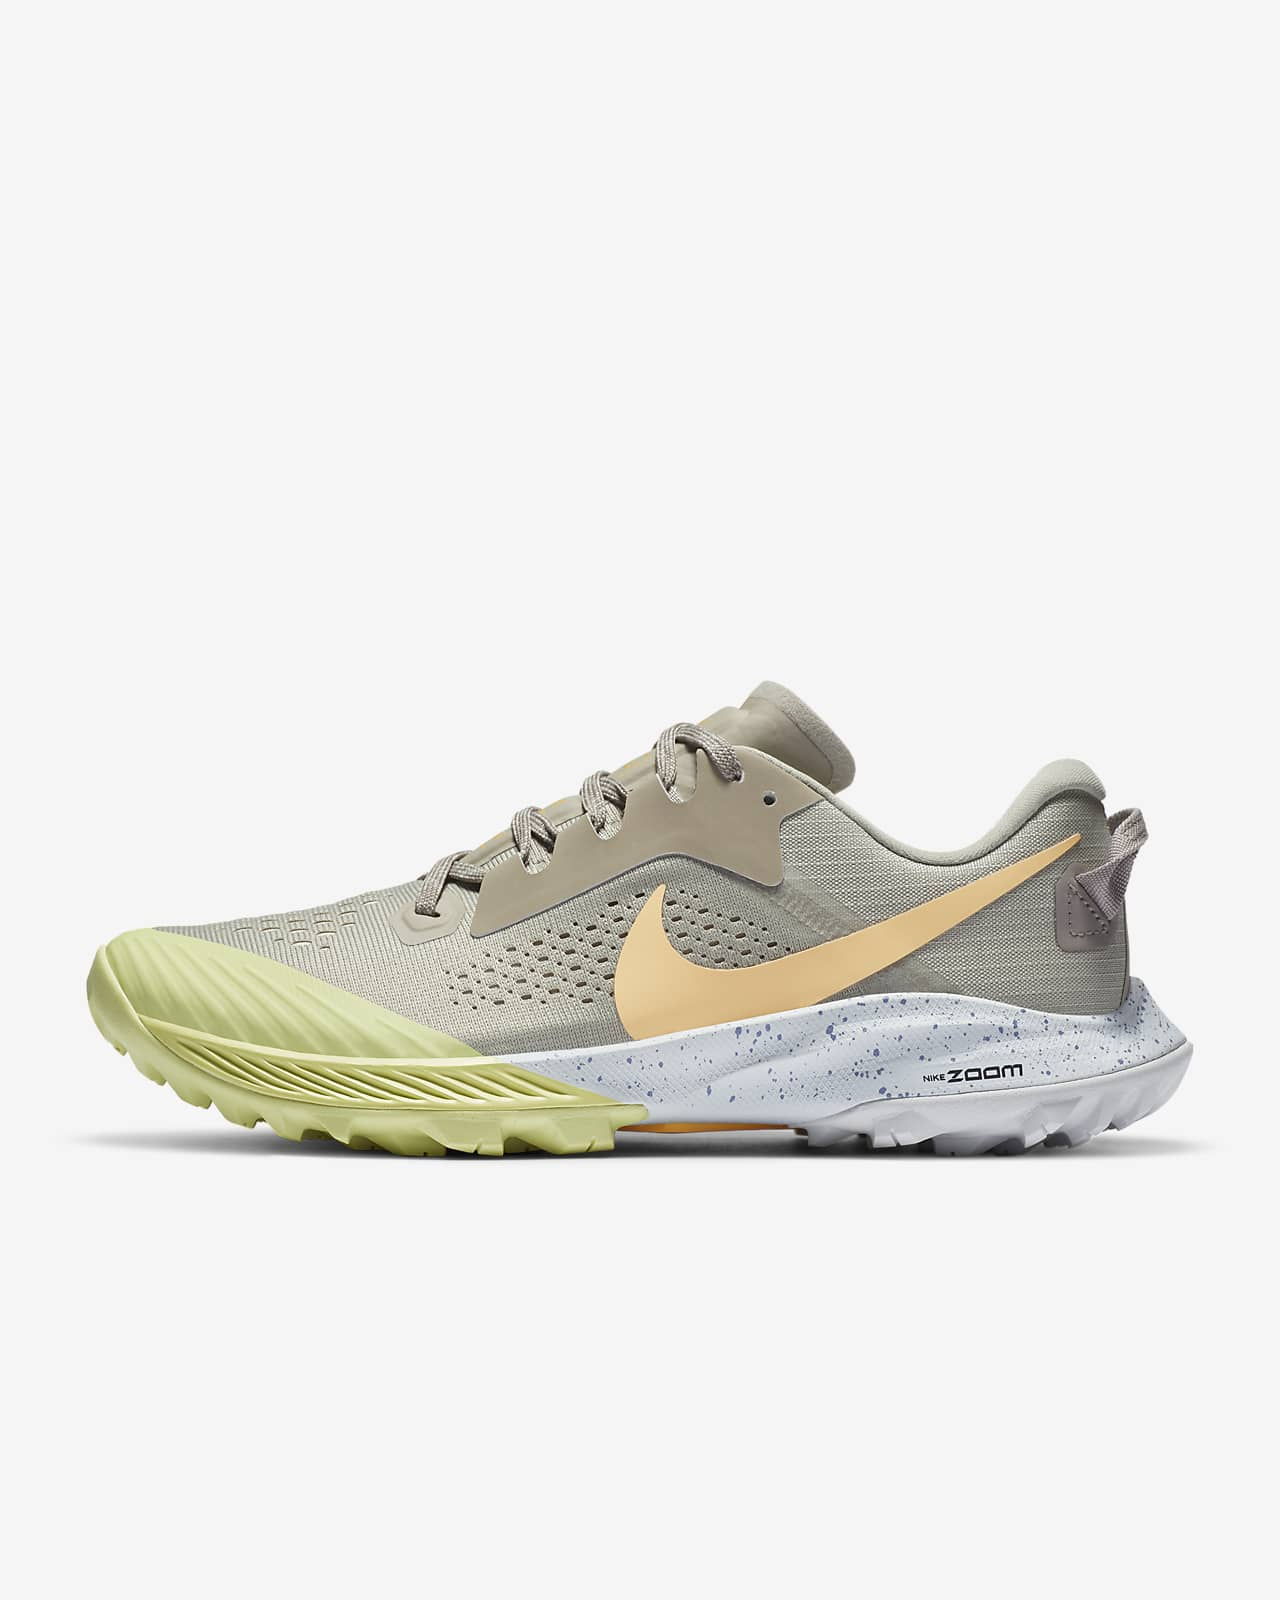 Nike Air Zoom Terra Kiger 6 Women's Trail Running Shoes